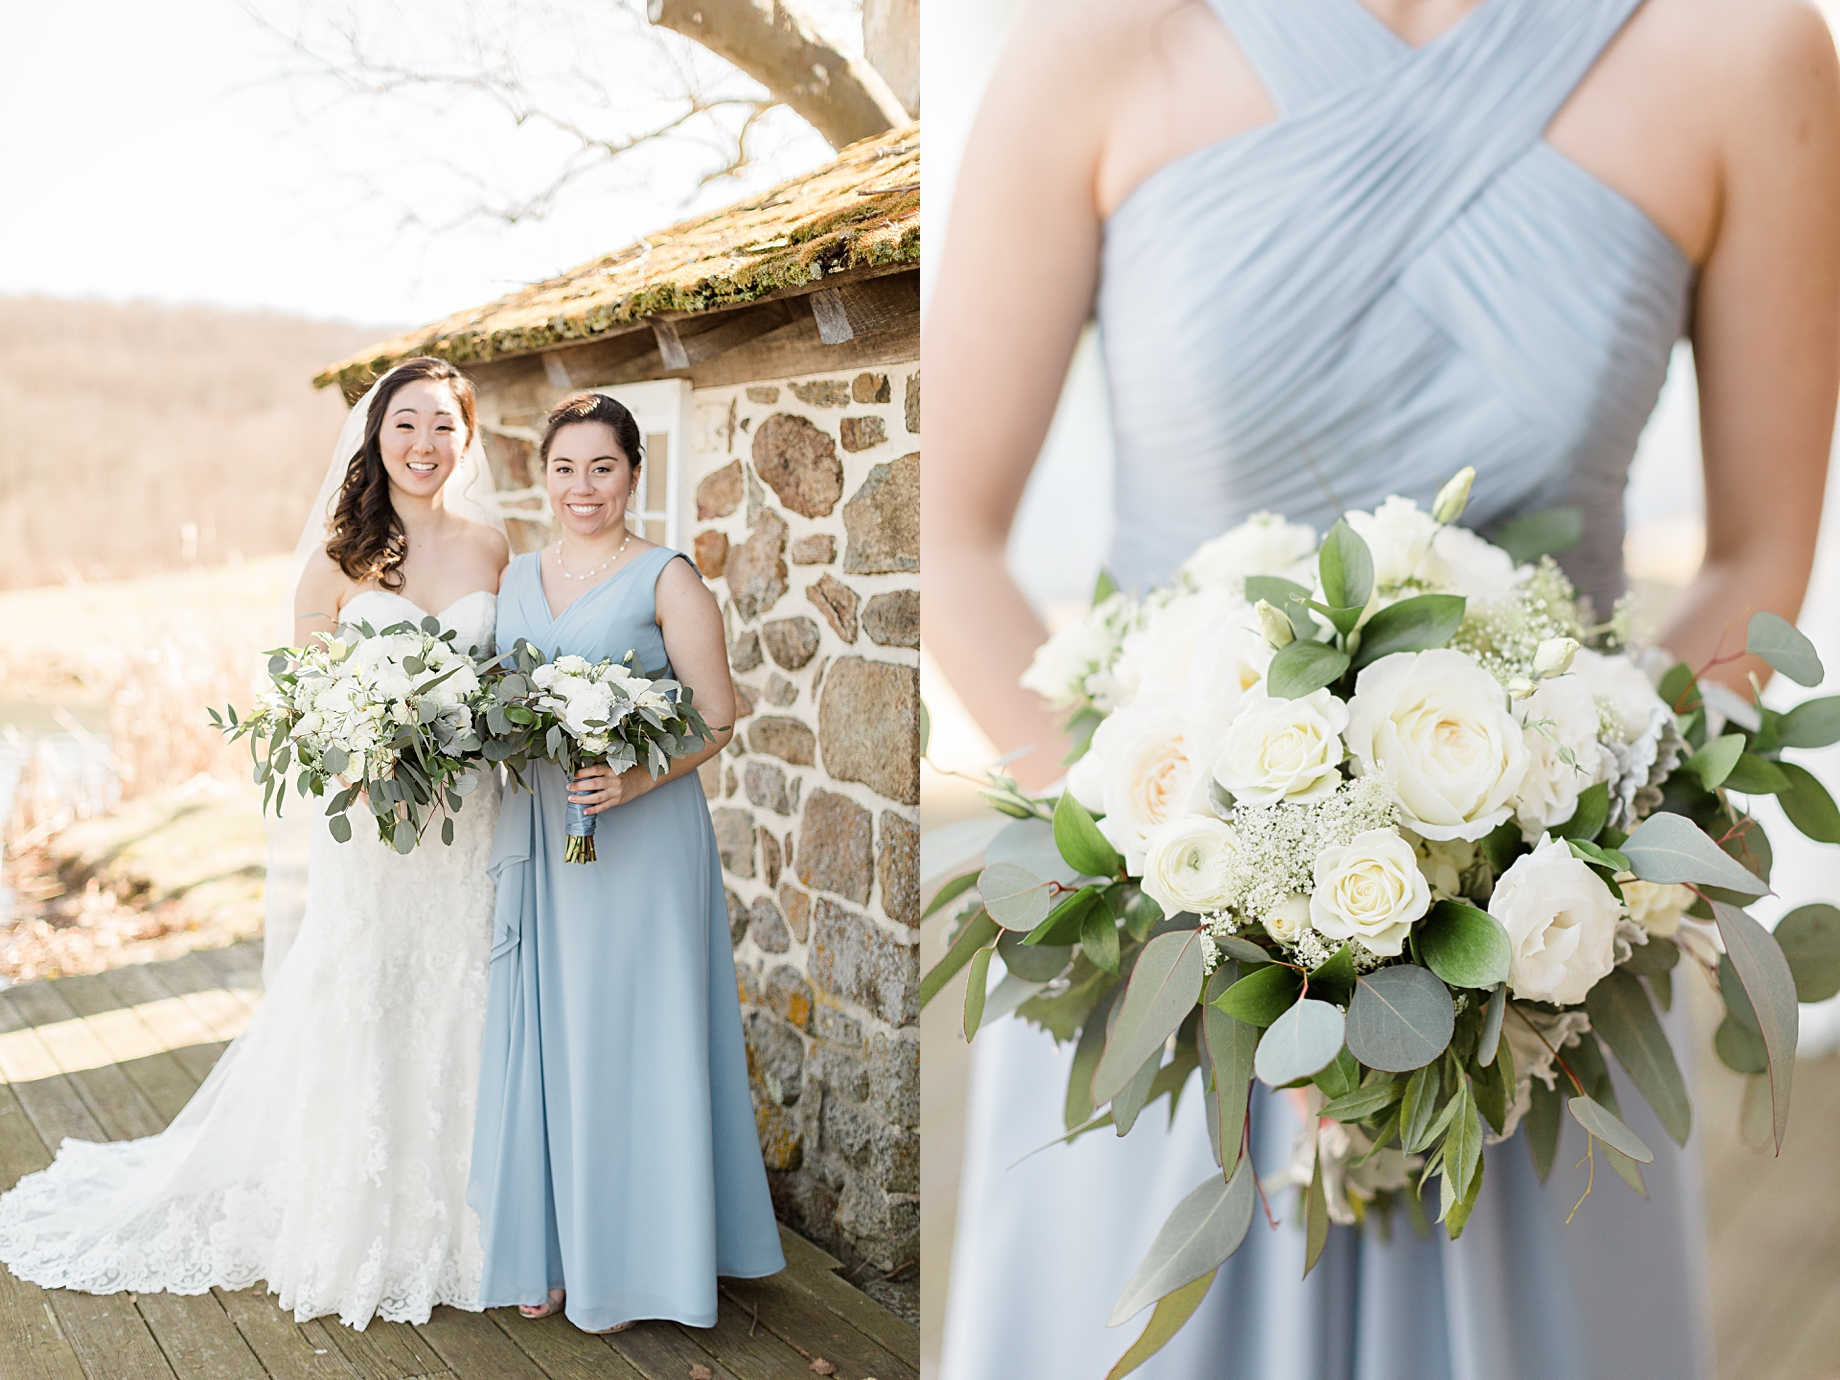 Elegant Winter Wedding at French Creek Golf Club | Flowers by Blue Moon Florist